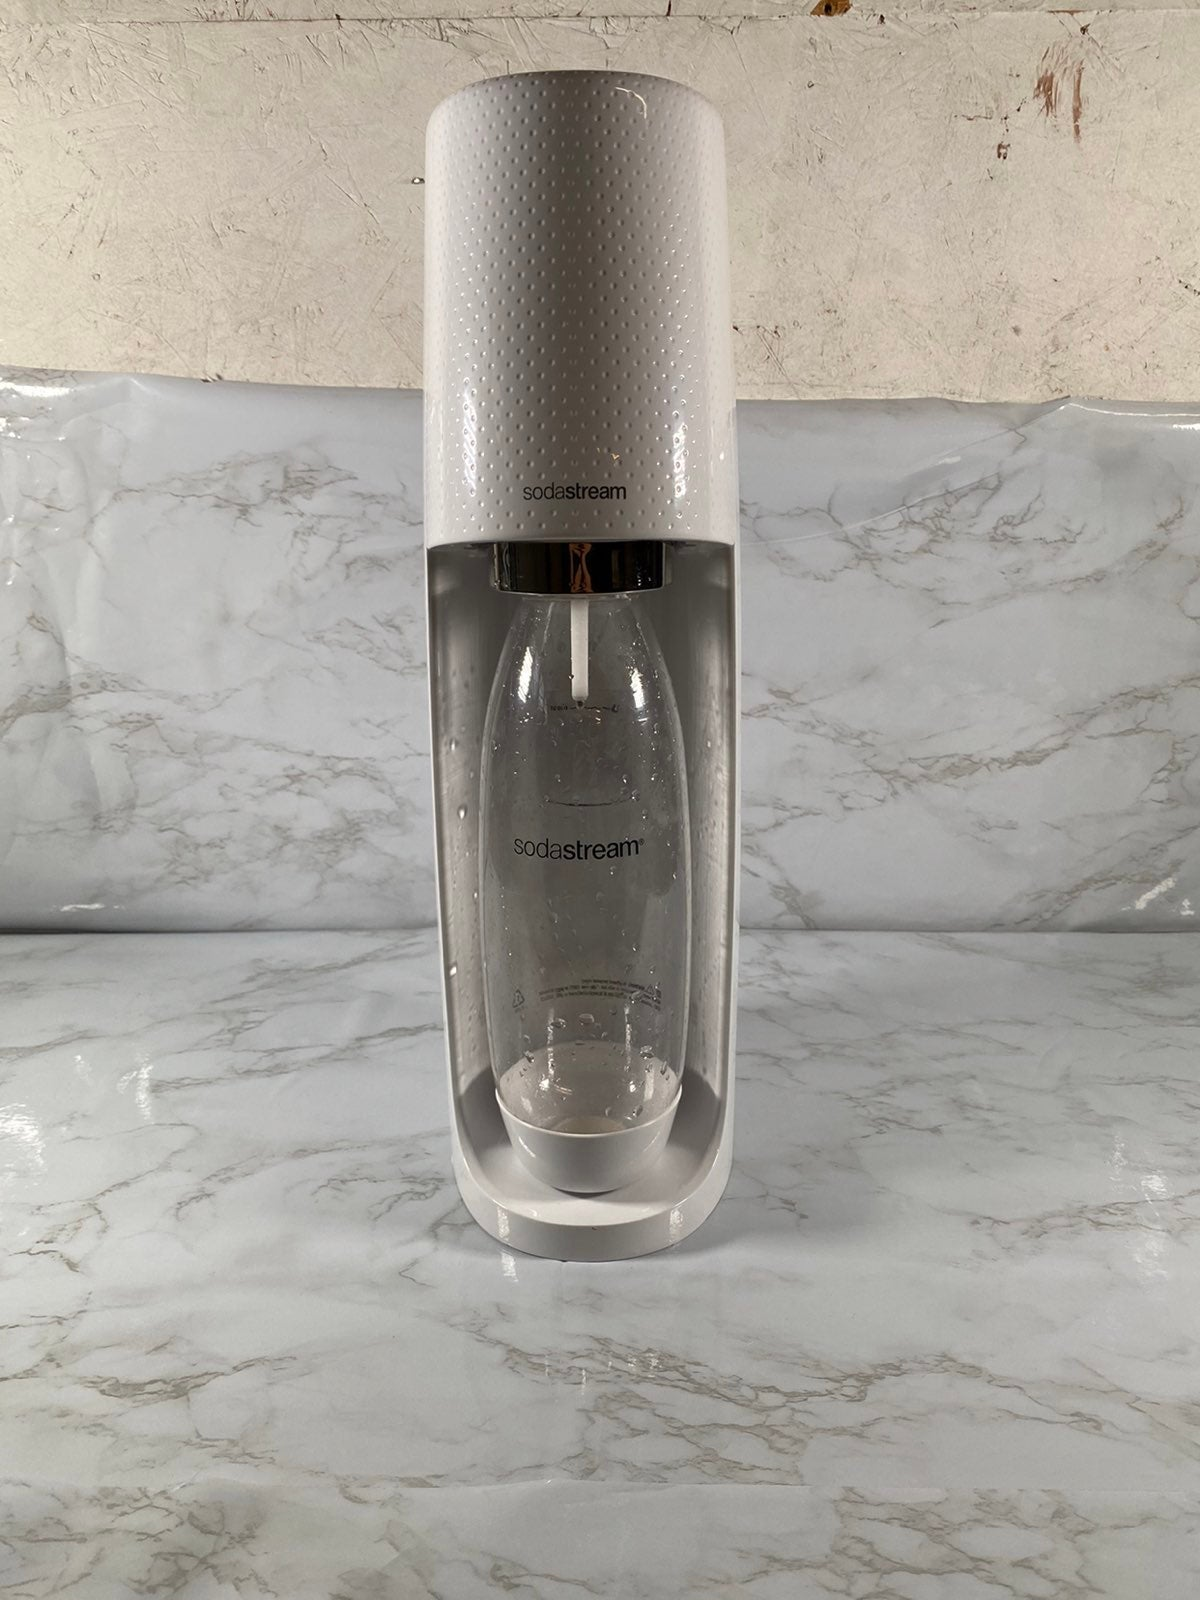 SodaStream CO2 included